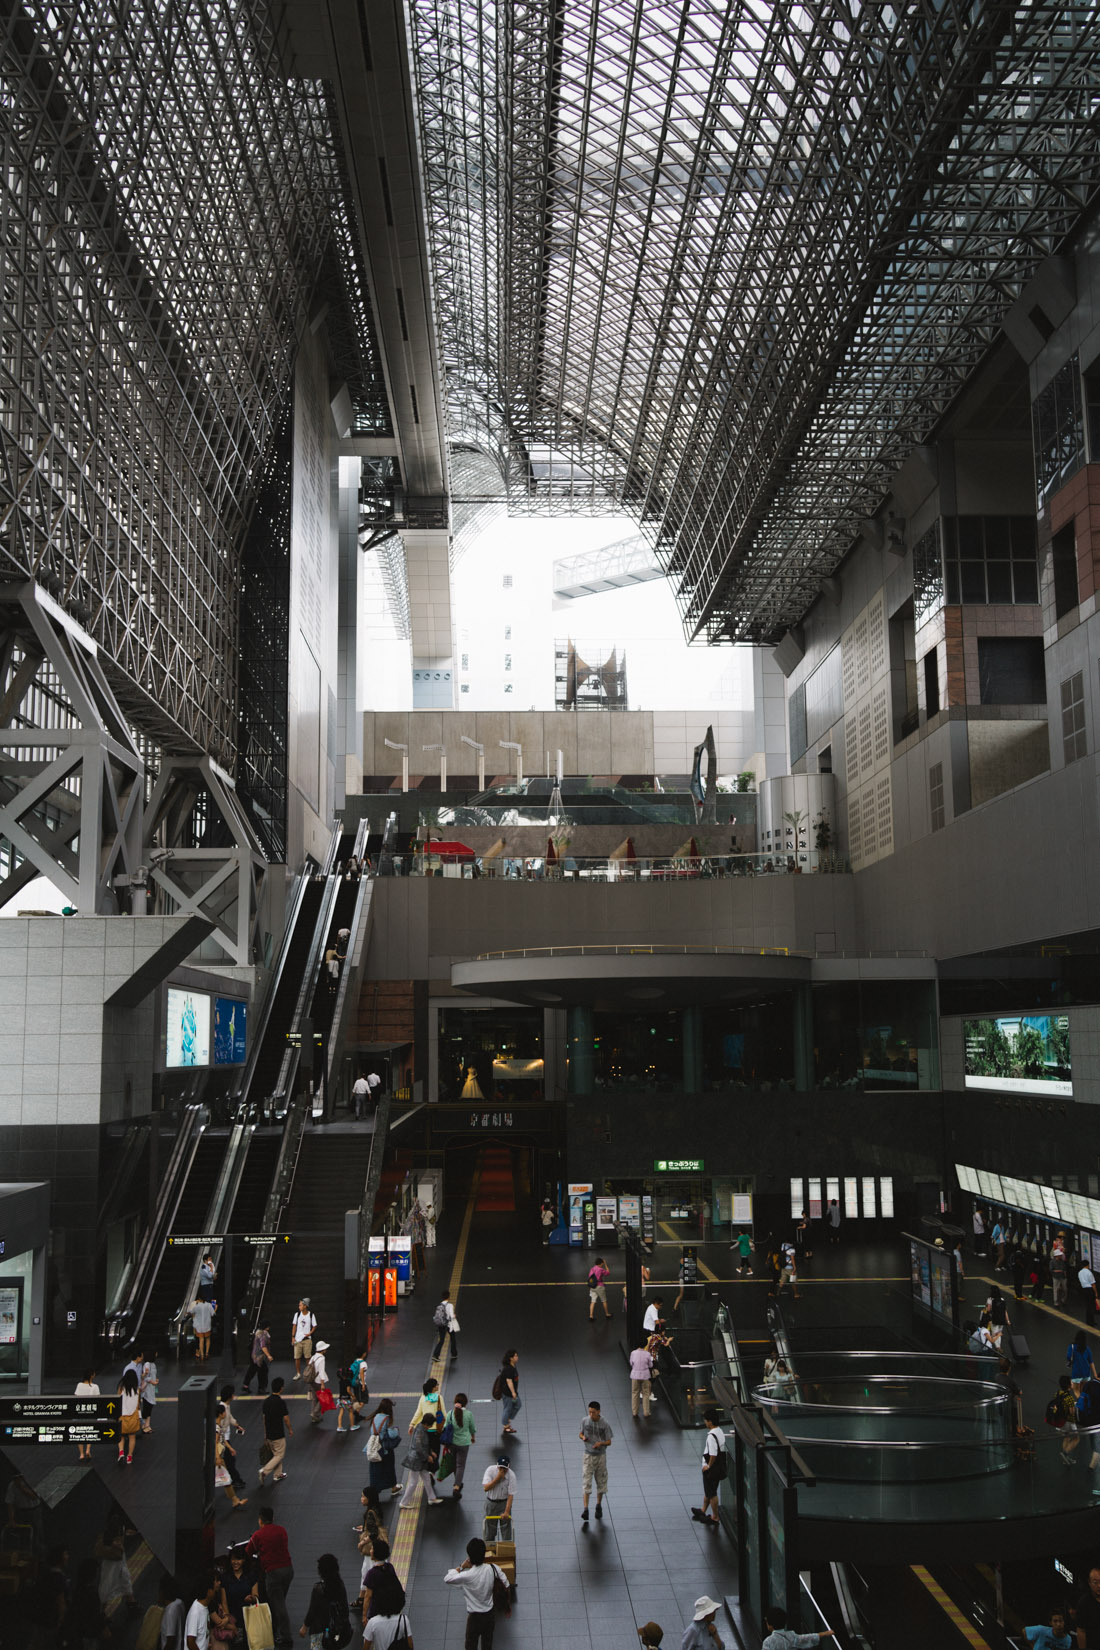 Saying the Kyoto station is huge is, quite frankly, an understatement.